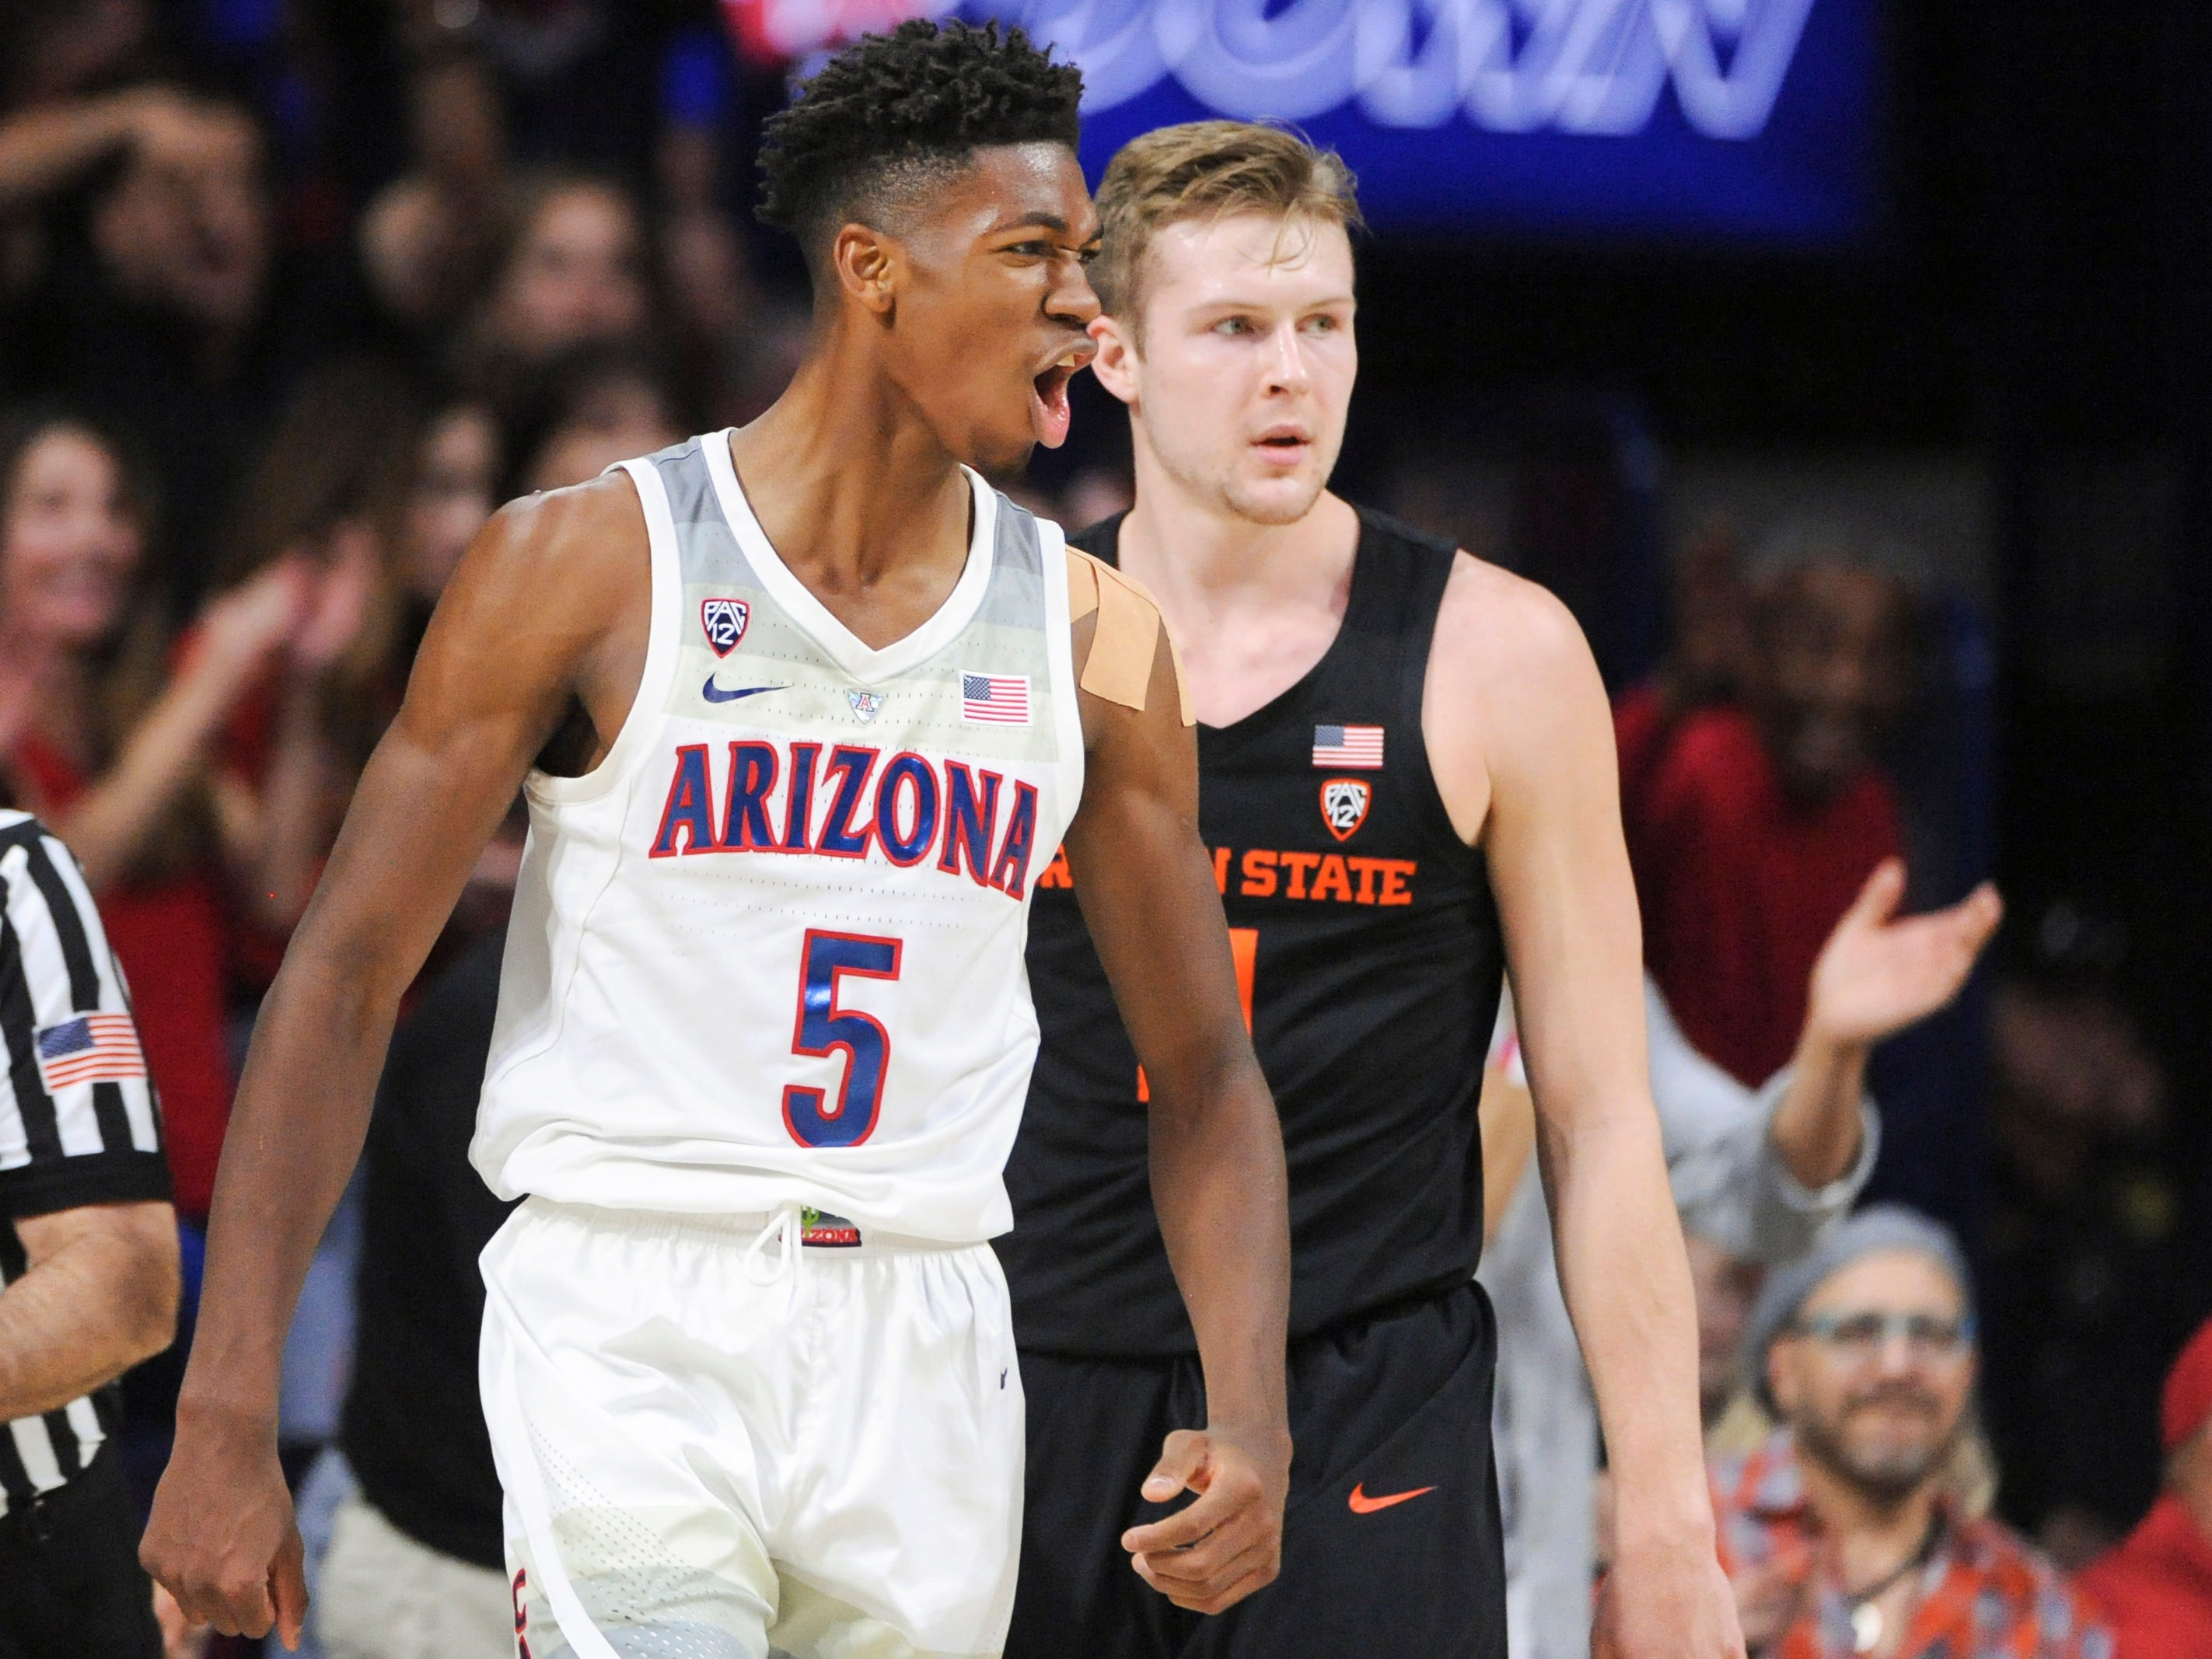 Jan 19, 2019; Tucson, AZ, USA; Arizona Wildcats guard Brandon Randolph (5) reacts to a foul call in front of Oregon State Beavers guard Zach Reichle (11) during the second half at McKale Center. Mandatory Credit: Casey Sapio-USA TODAY Sports